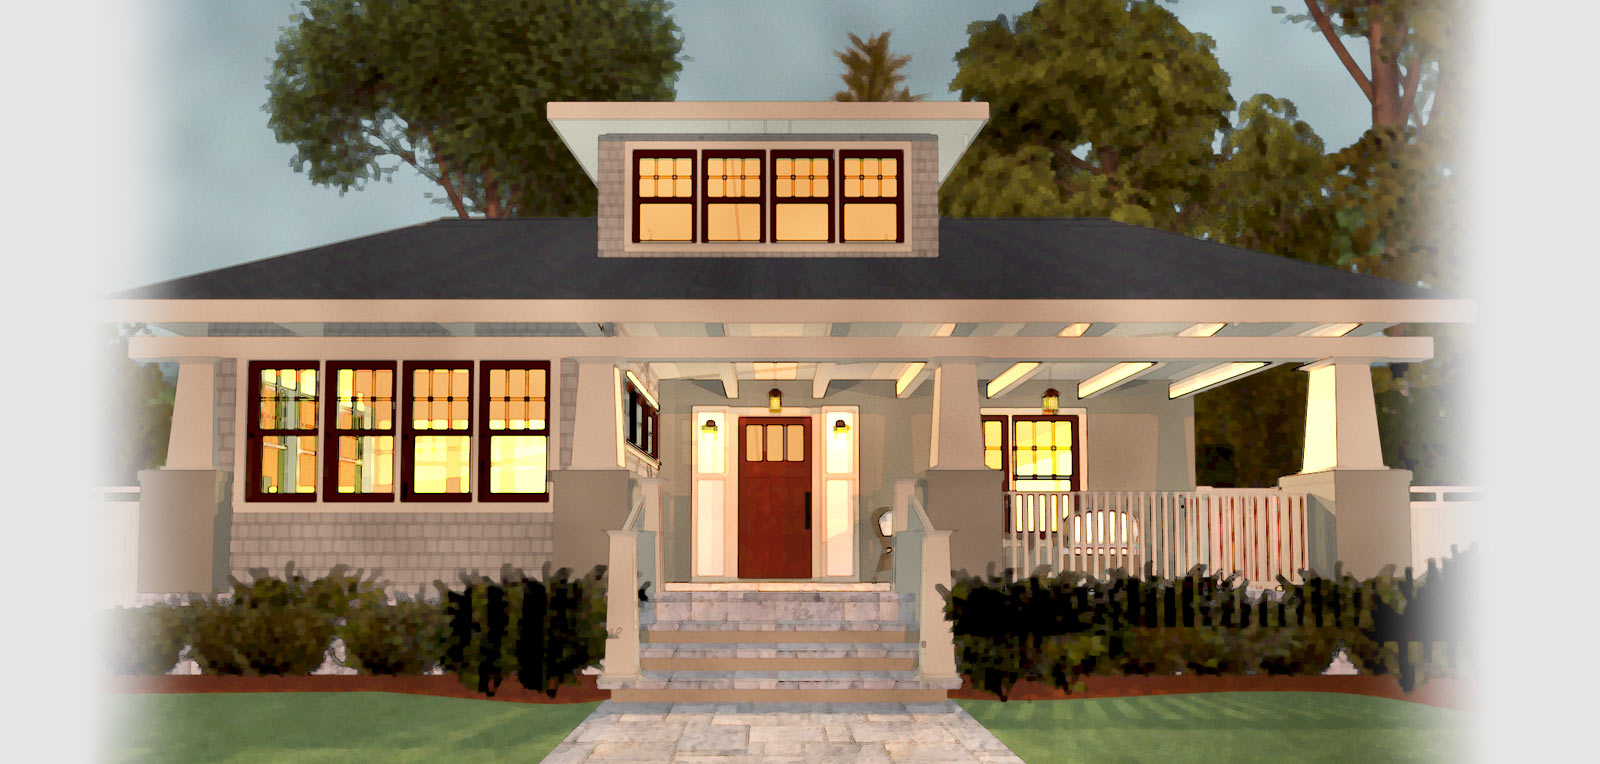 Home designer software for home design remodeling projects Online 3d home design tool